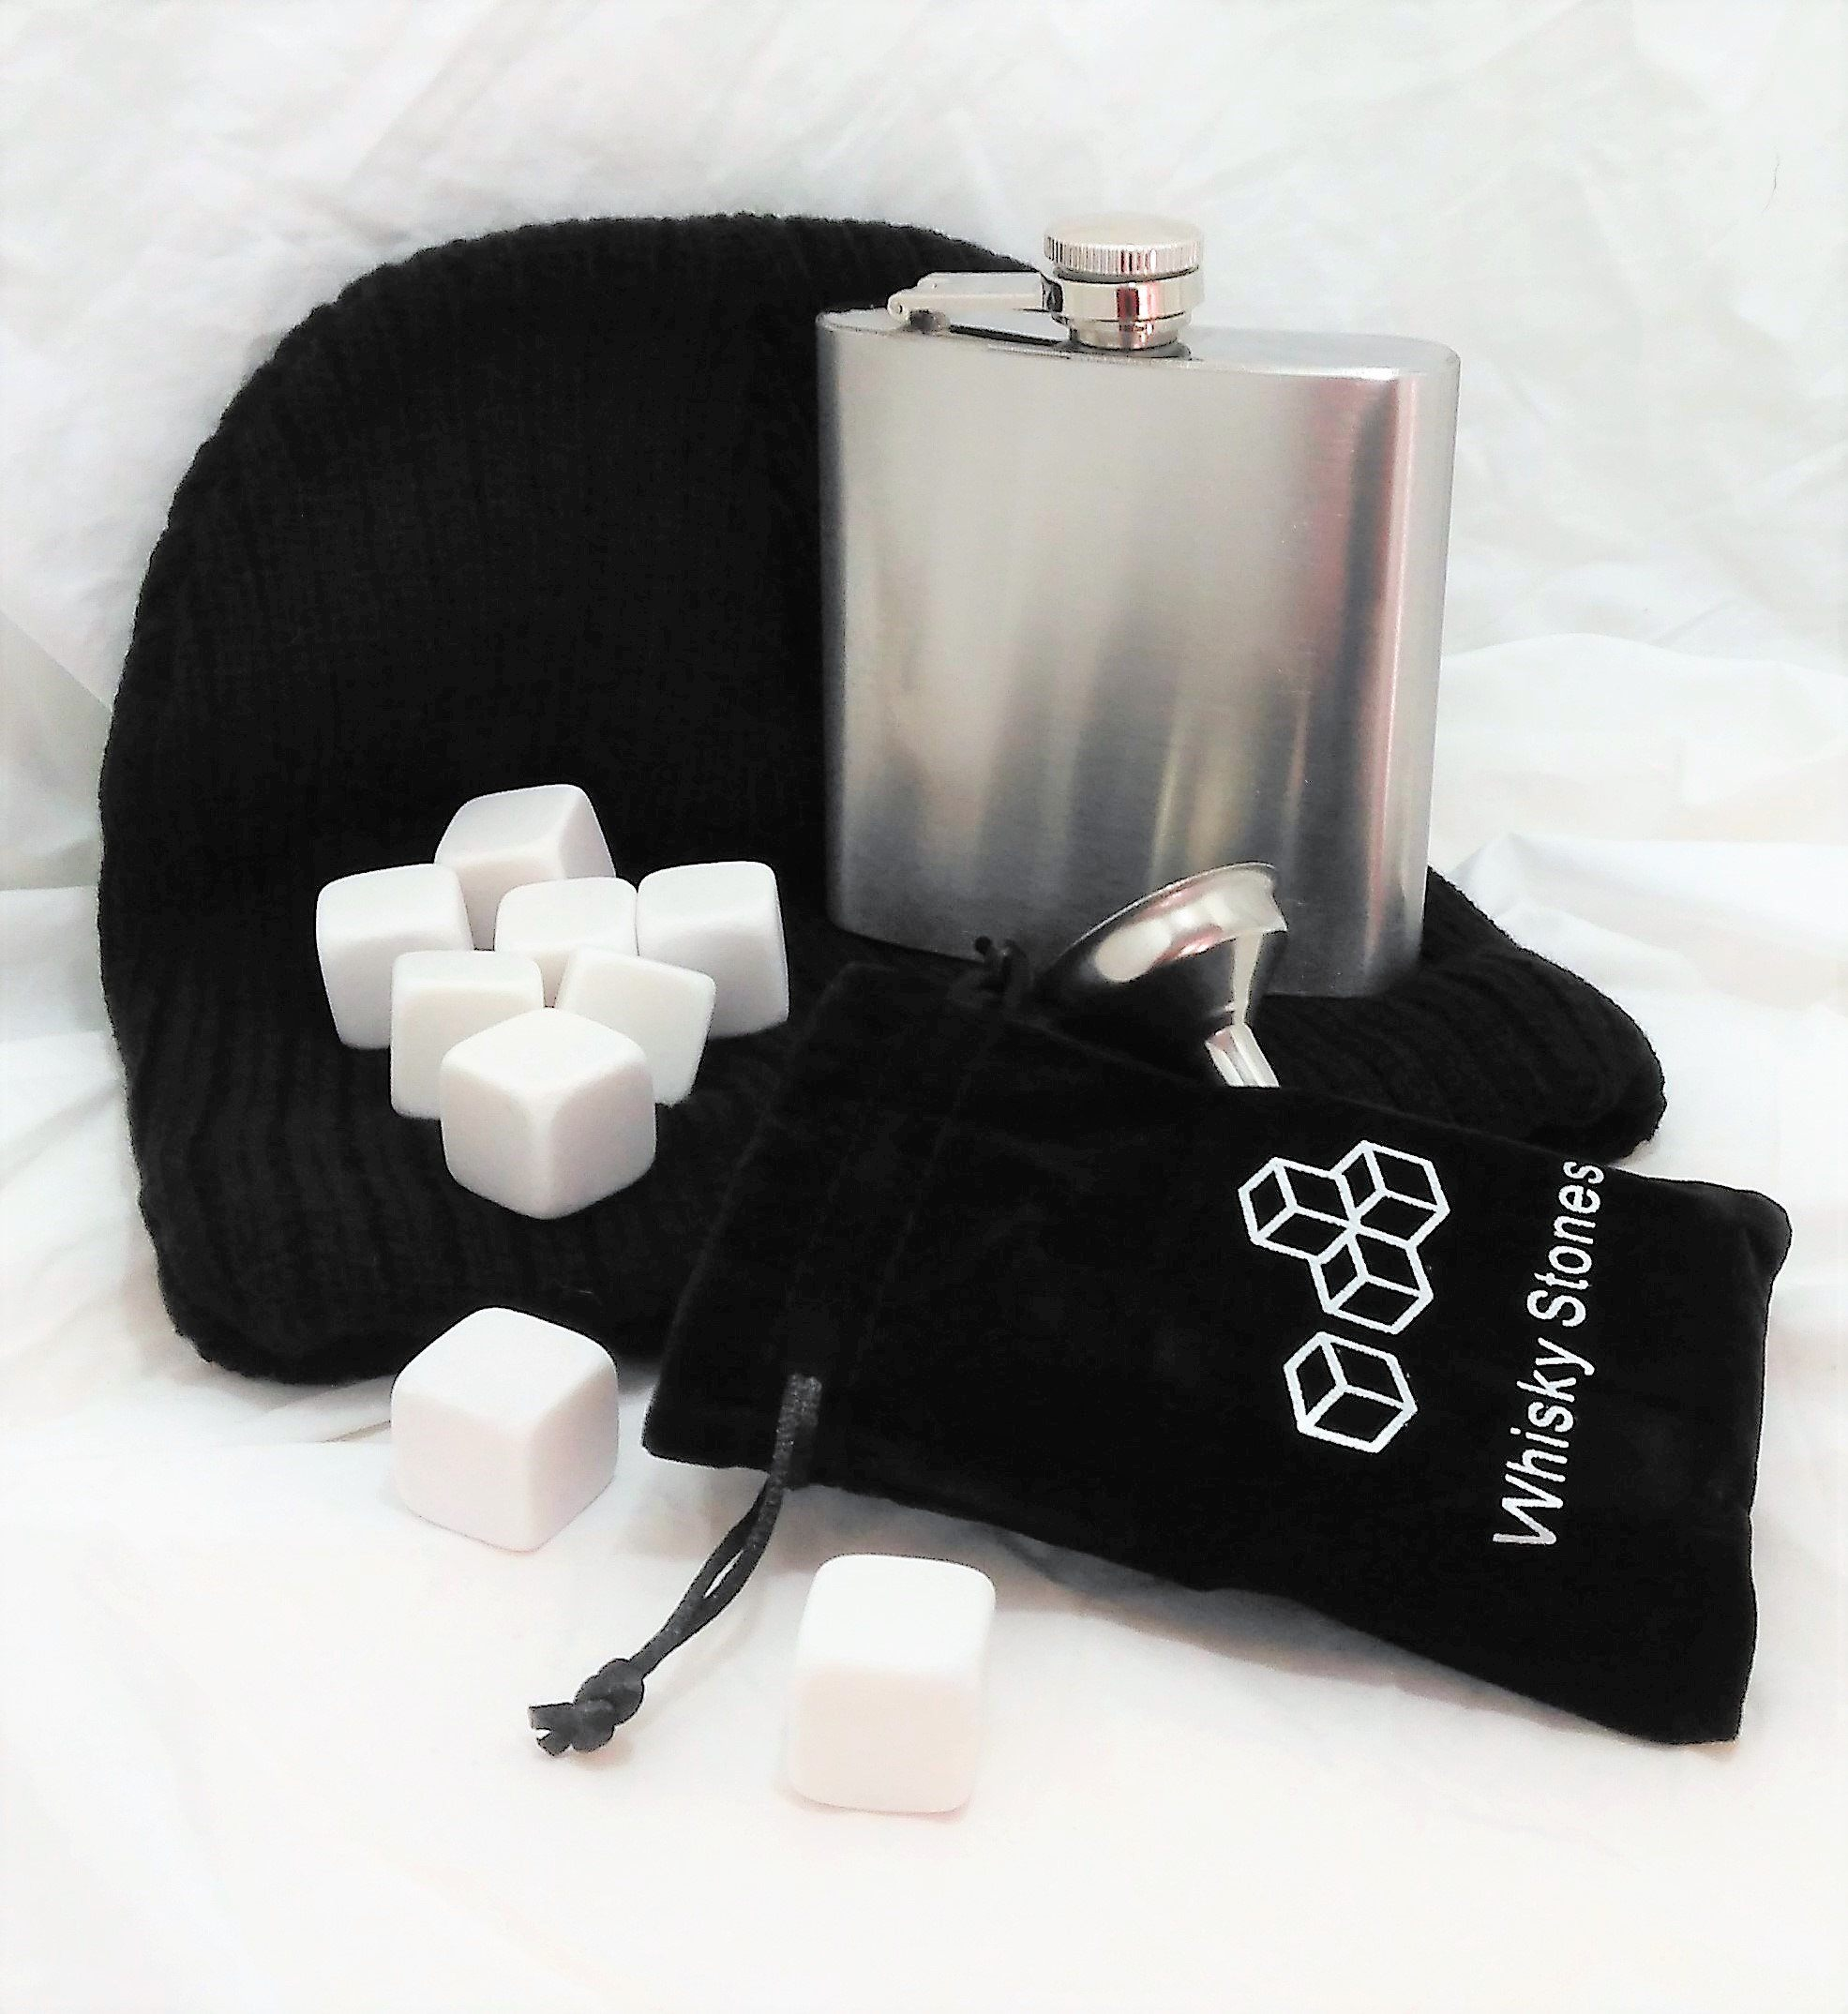 Whiskey stone and hip flask gift